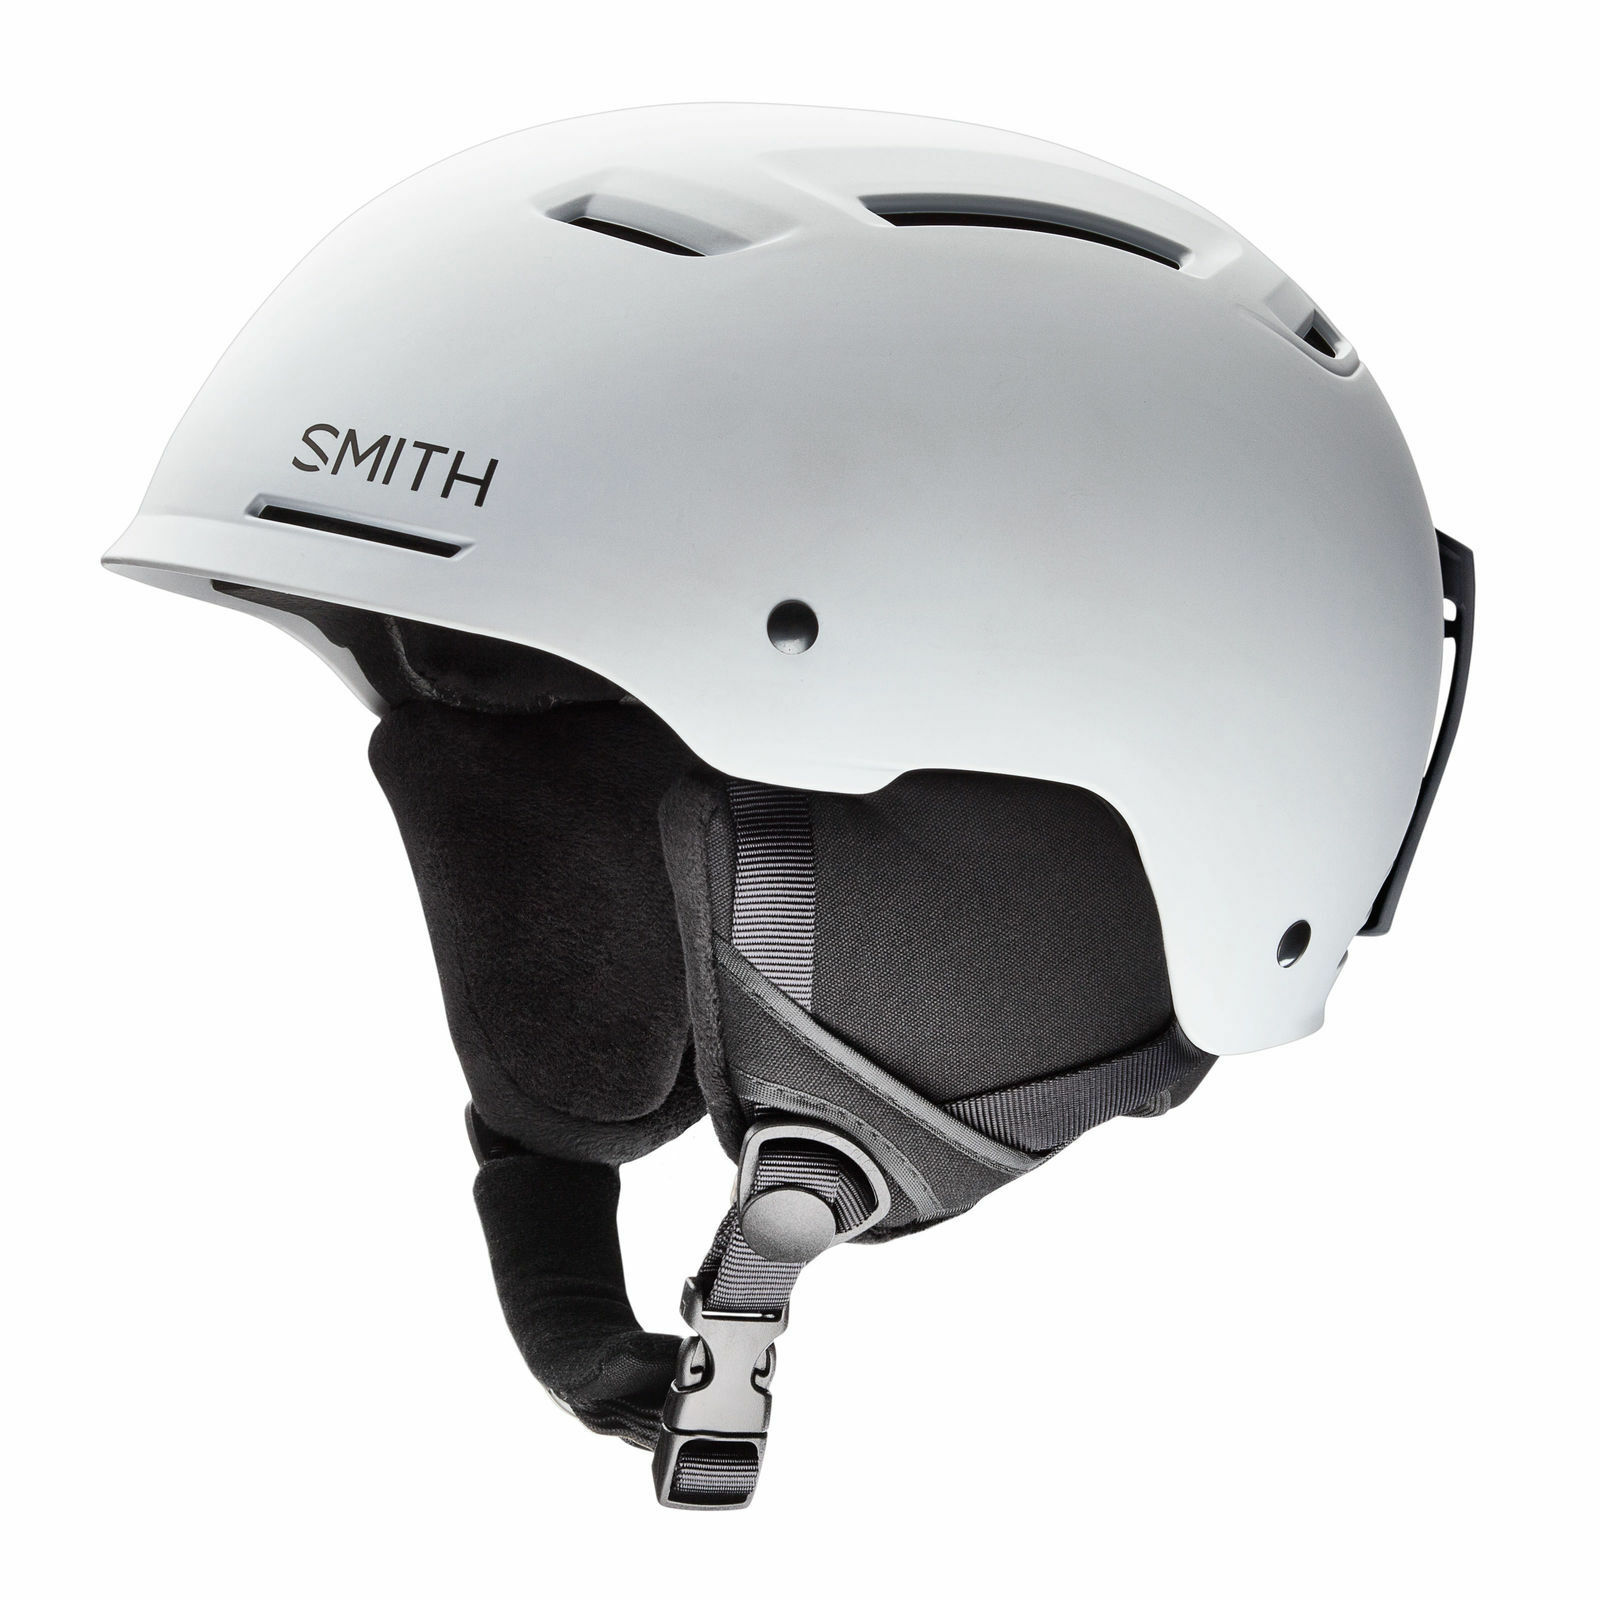 Smith Ski Helmet Snowboard Helmet Pivot Mips White Plain Colour Ear Cushion